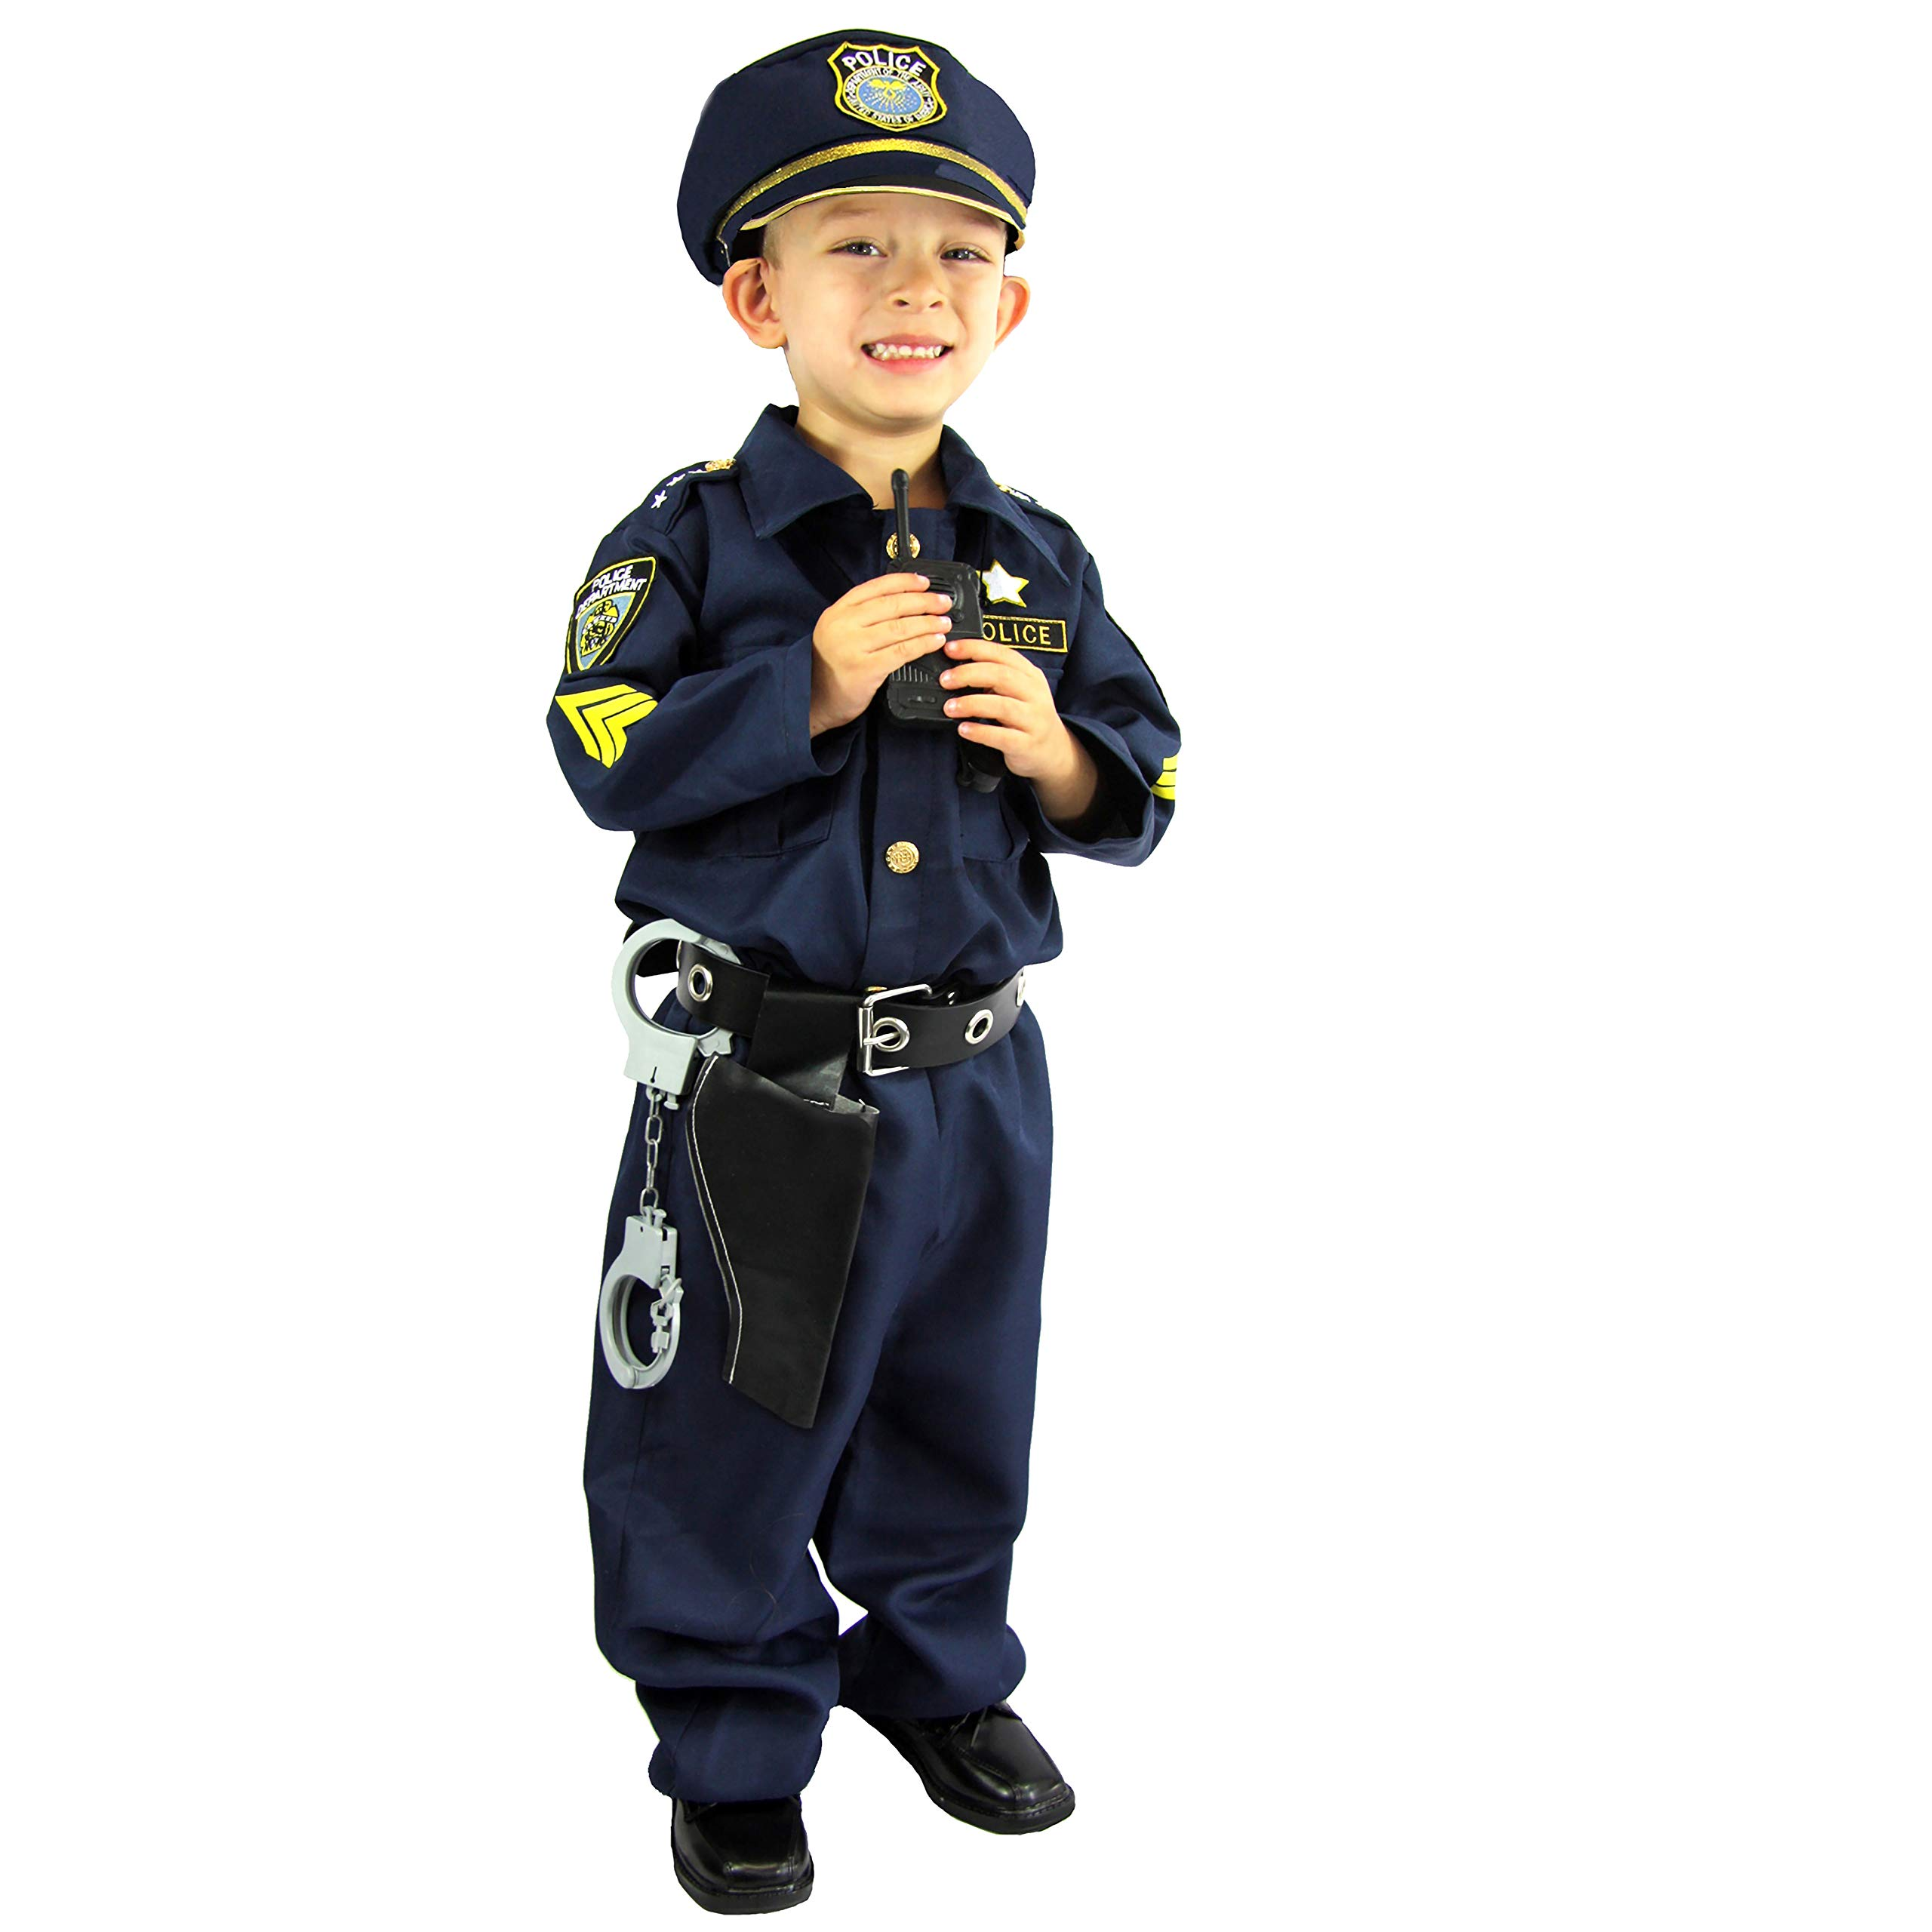 Joyin Toy Spooktacular Creations Deluxe Police Officer Costume for Kids and Role Play Kit (Small) Navy Blue by Joyin Toy